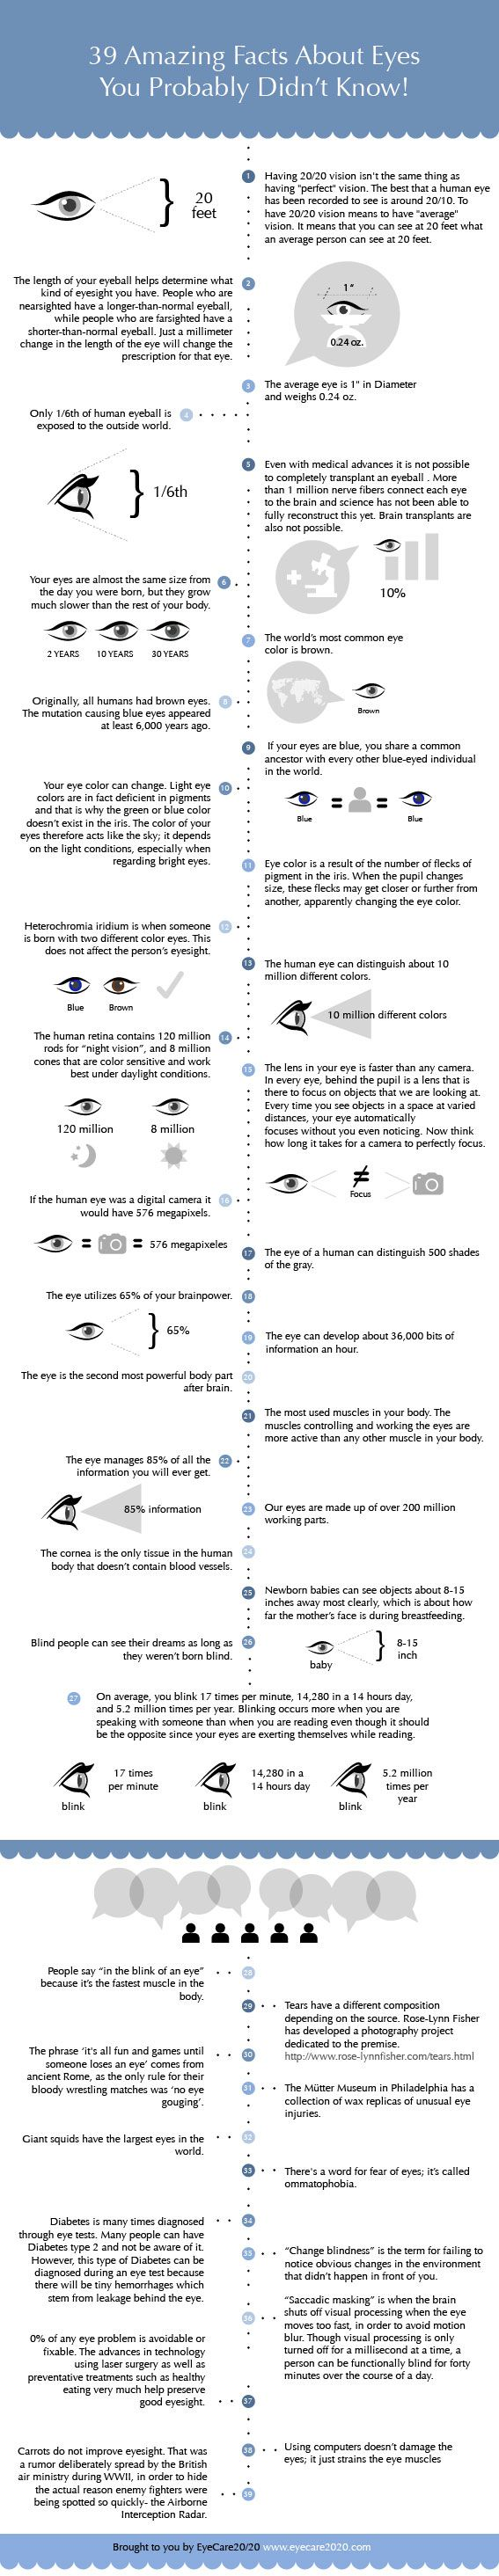 amazing facts about your eyes